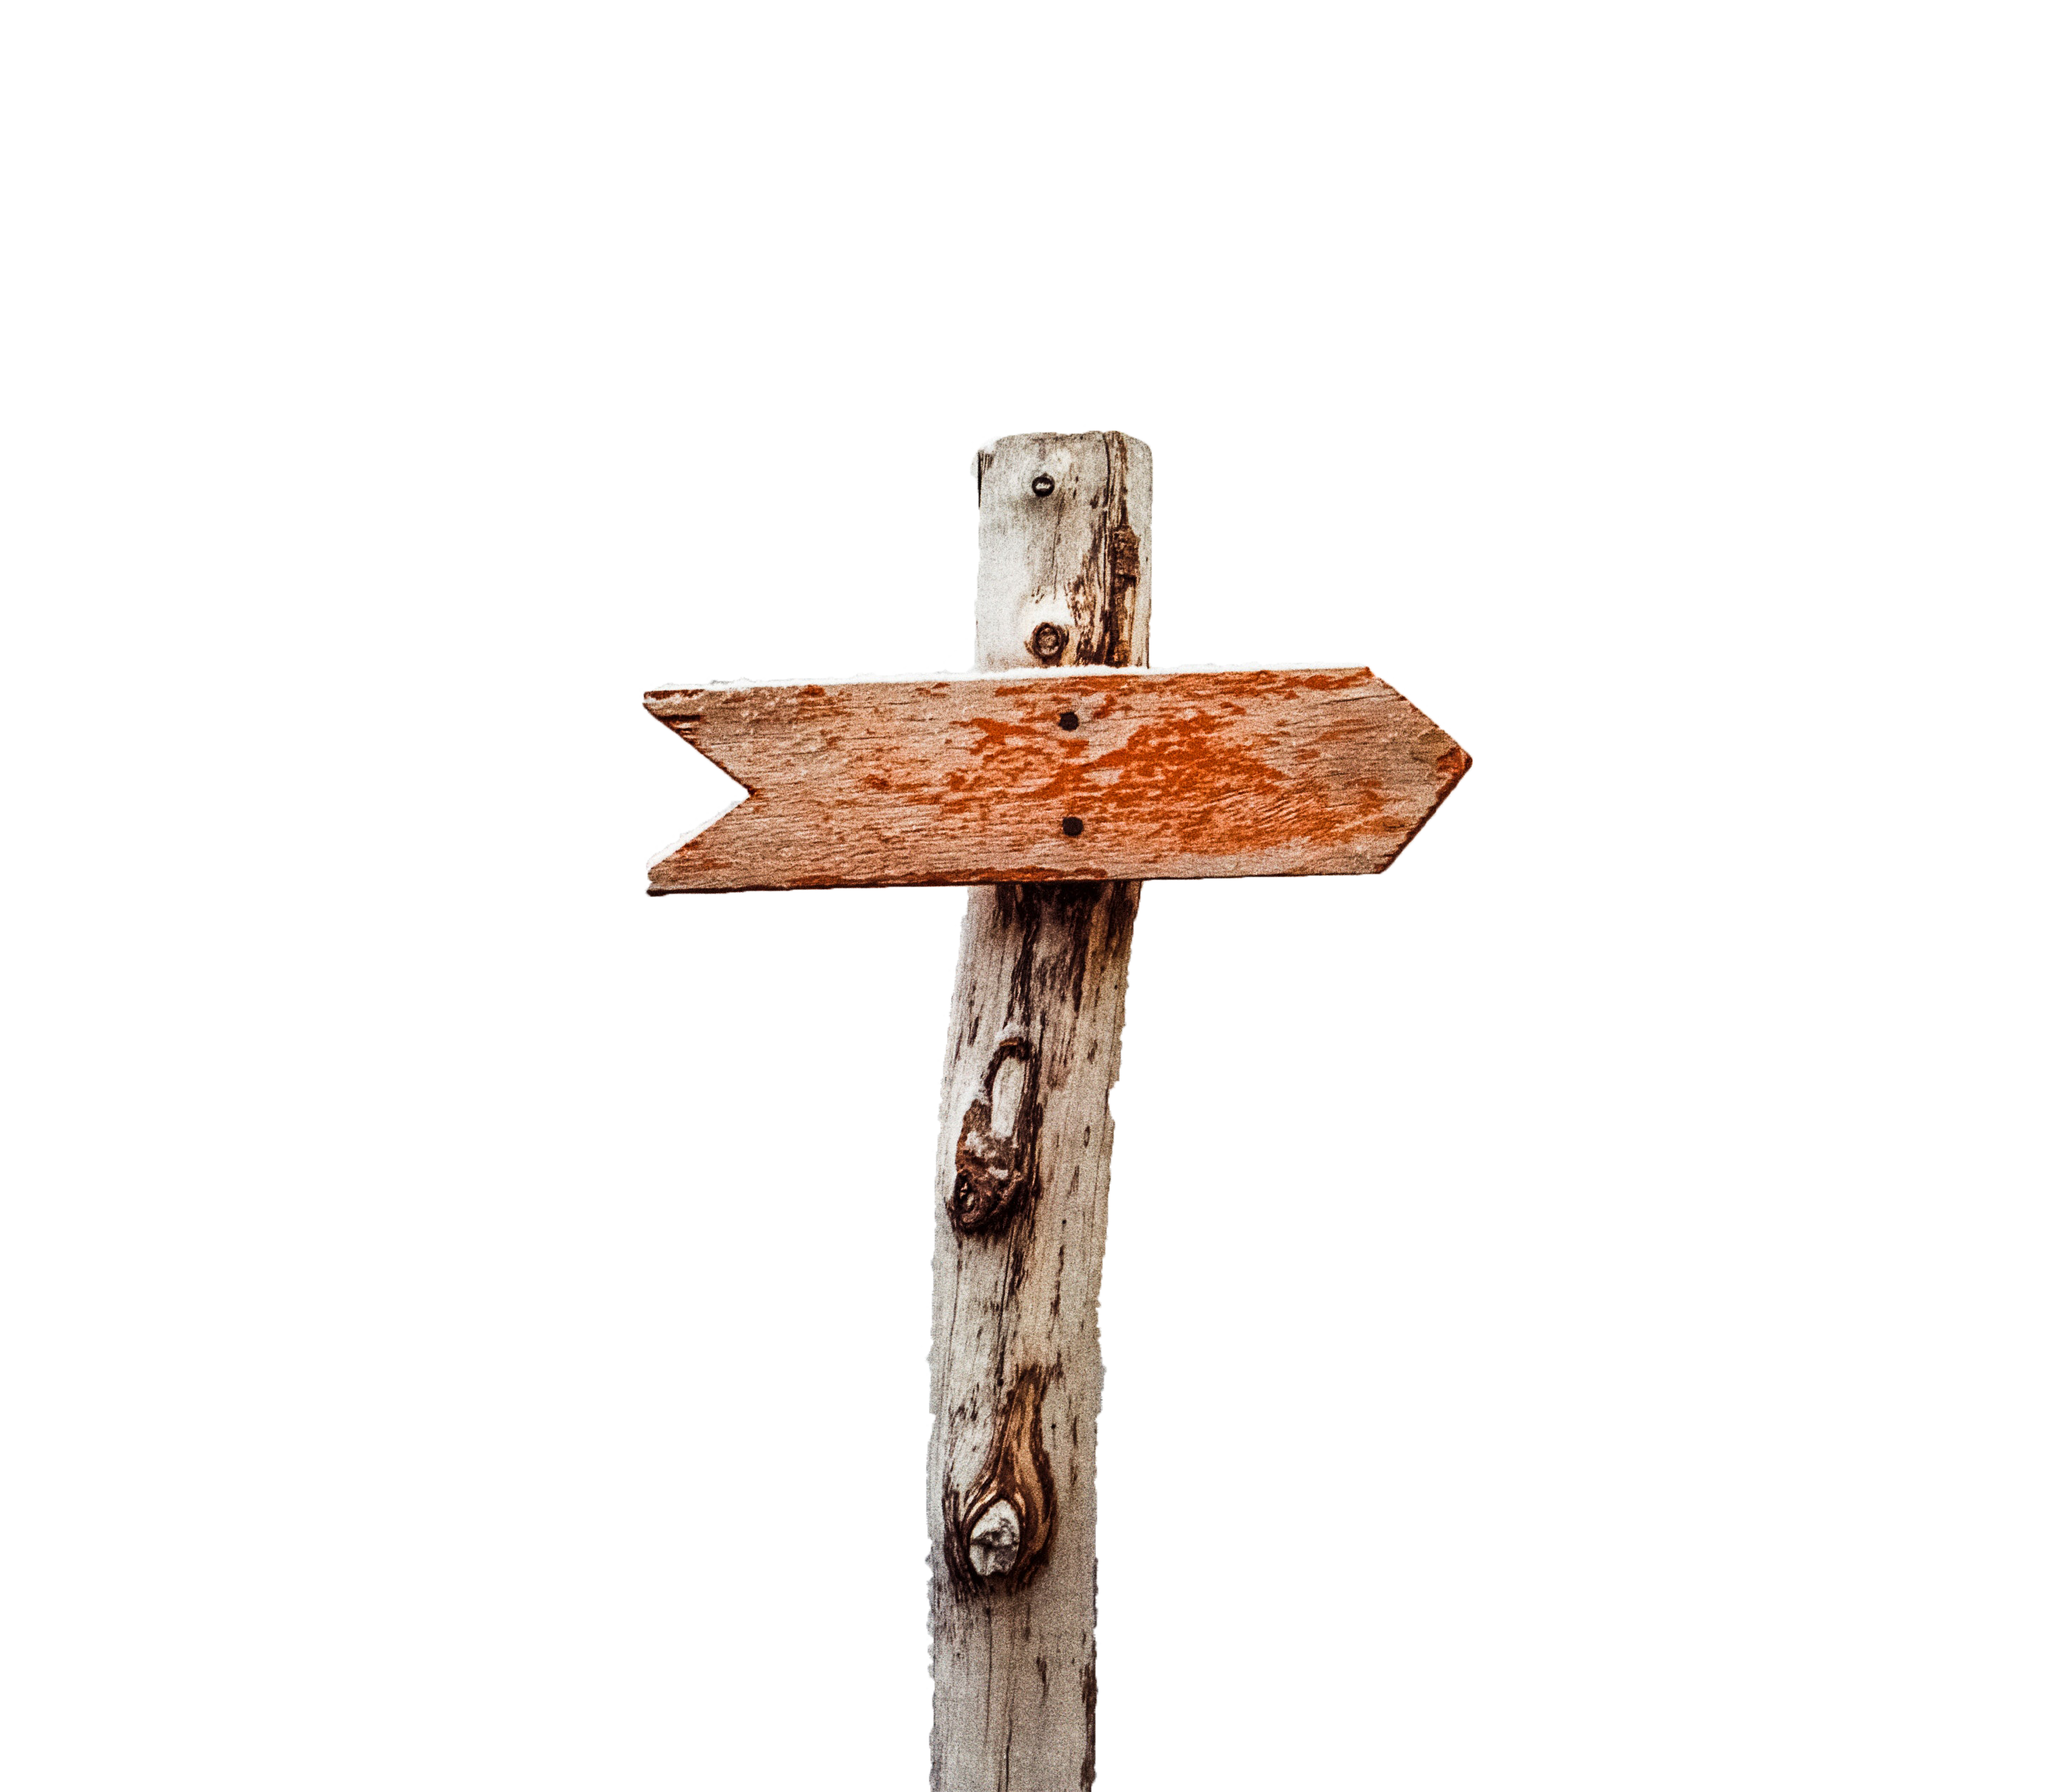 Wooden Arrow signals destination ahead with transparent background PNG